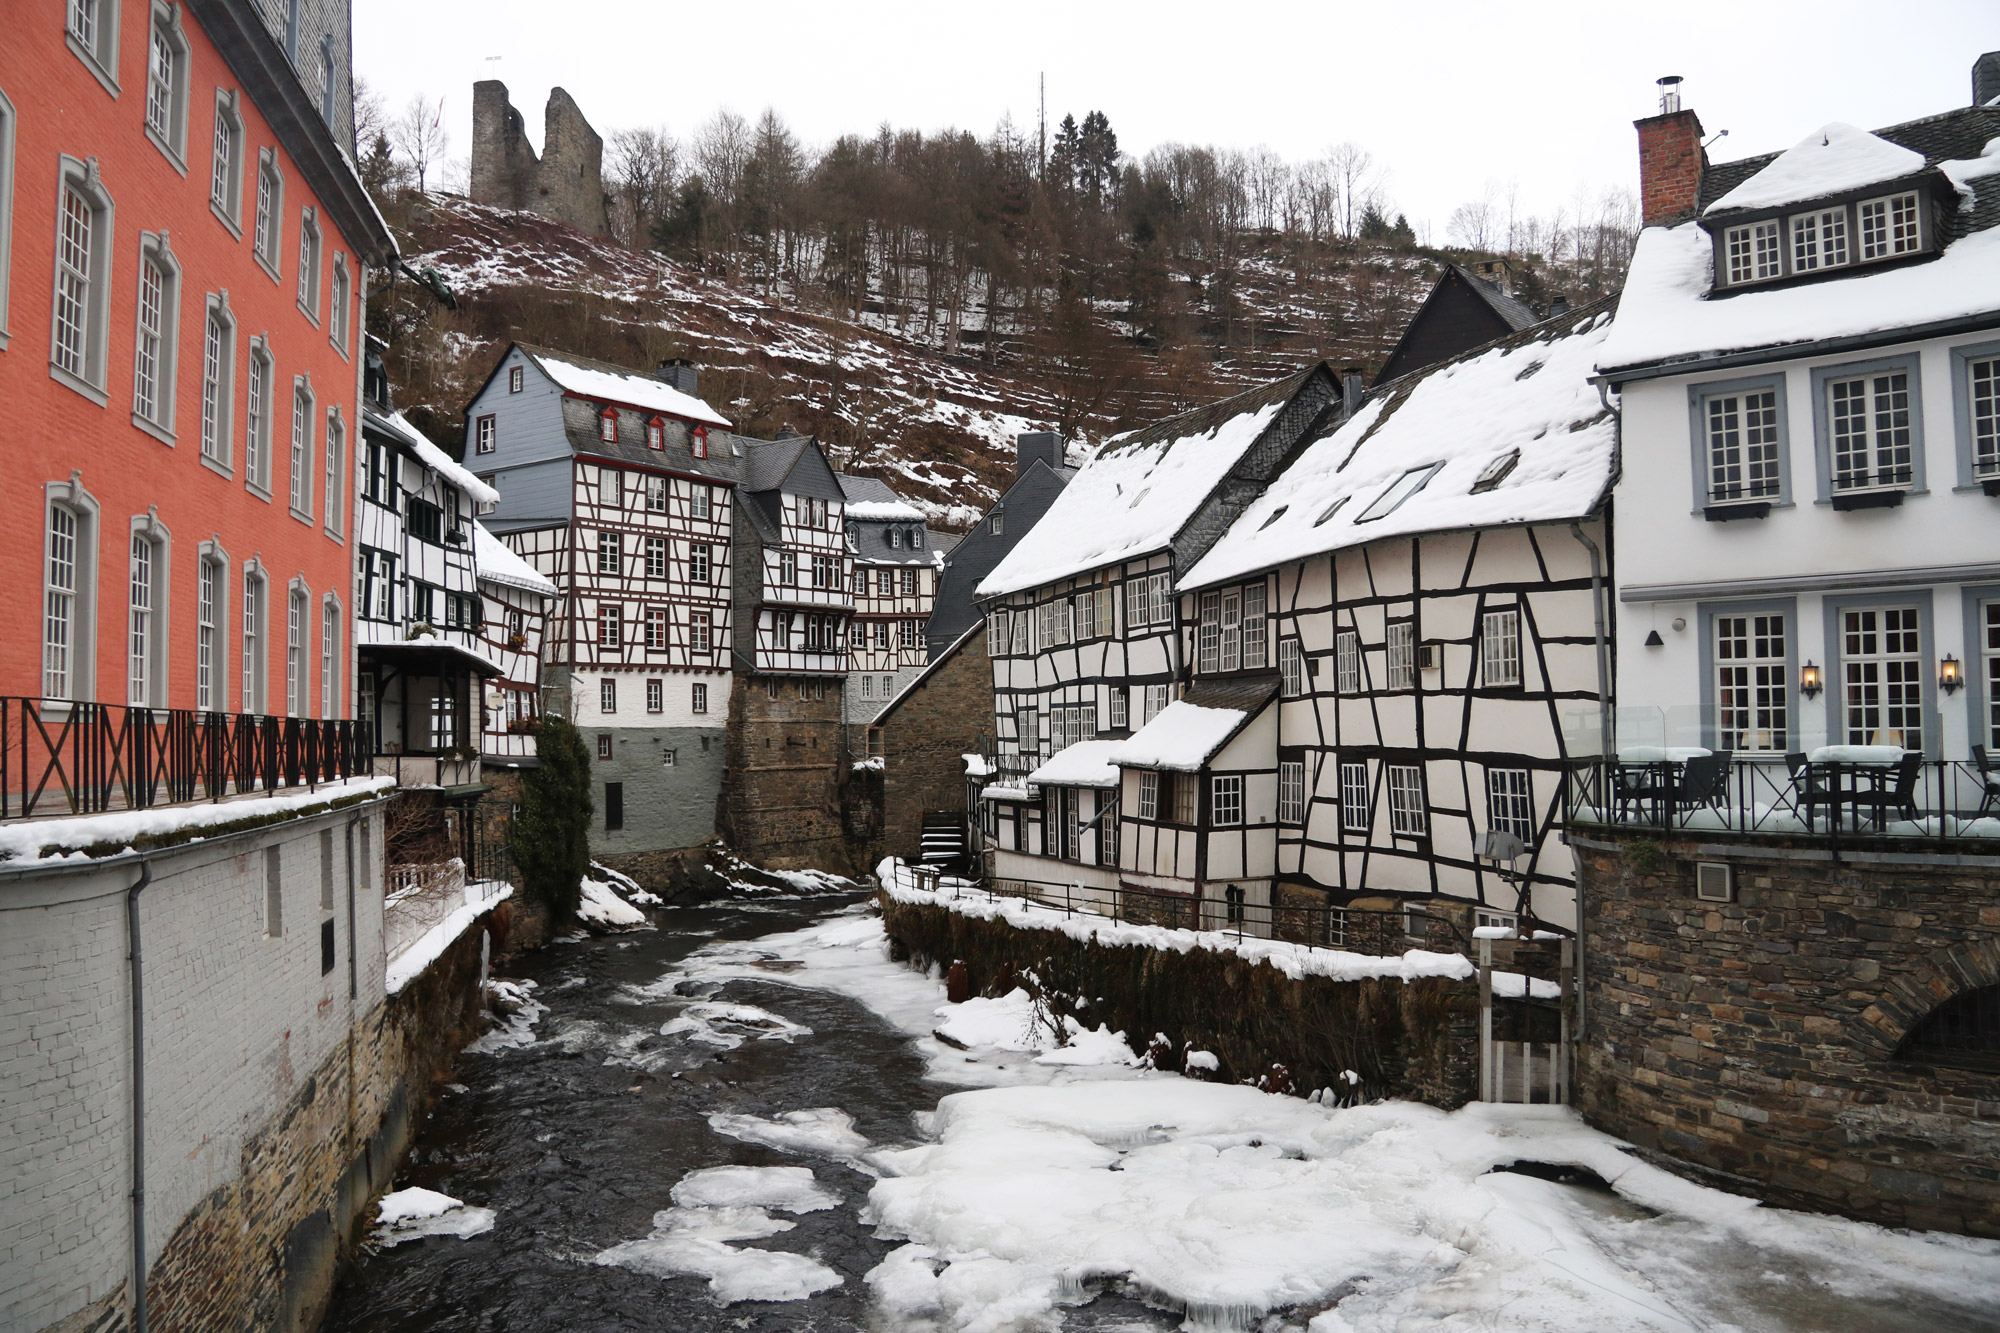 Stedentrip Monschau - Fotogenieke plekken